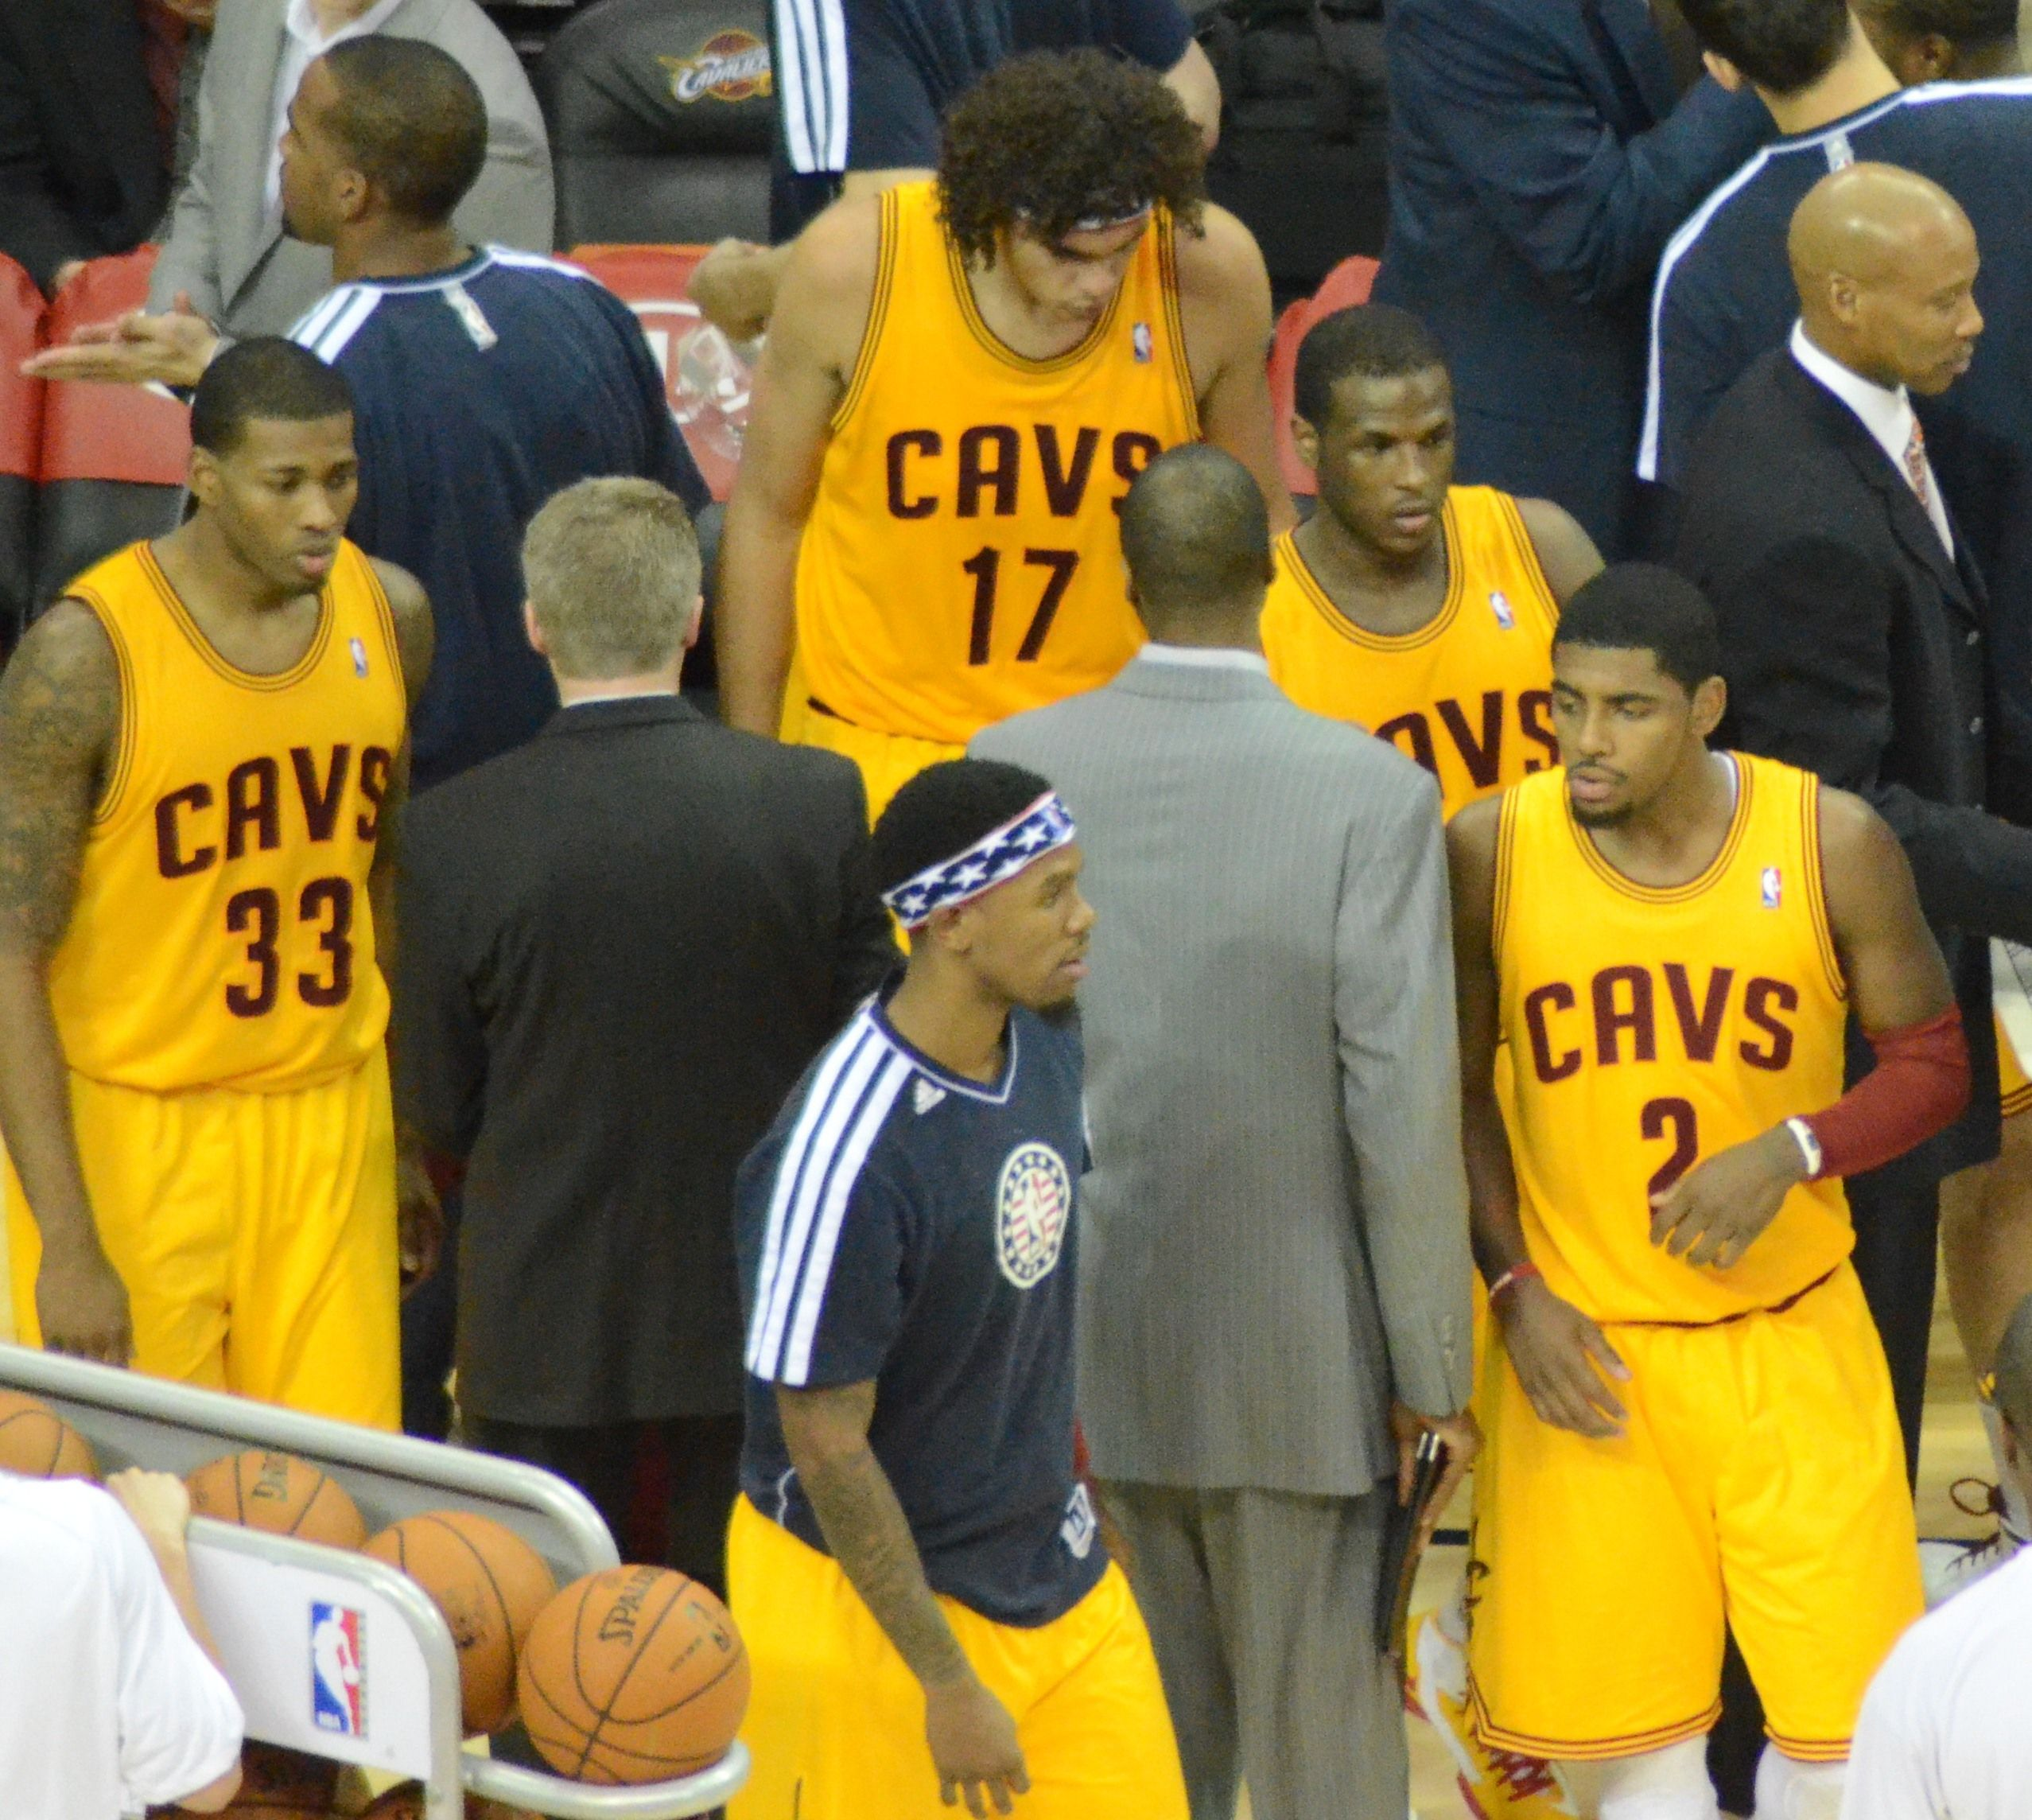 Cleveland Cavaliers players.